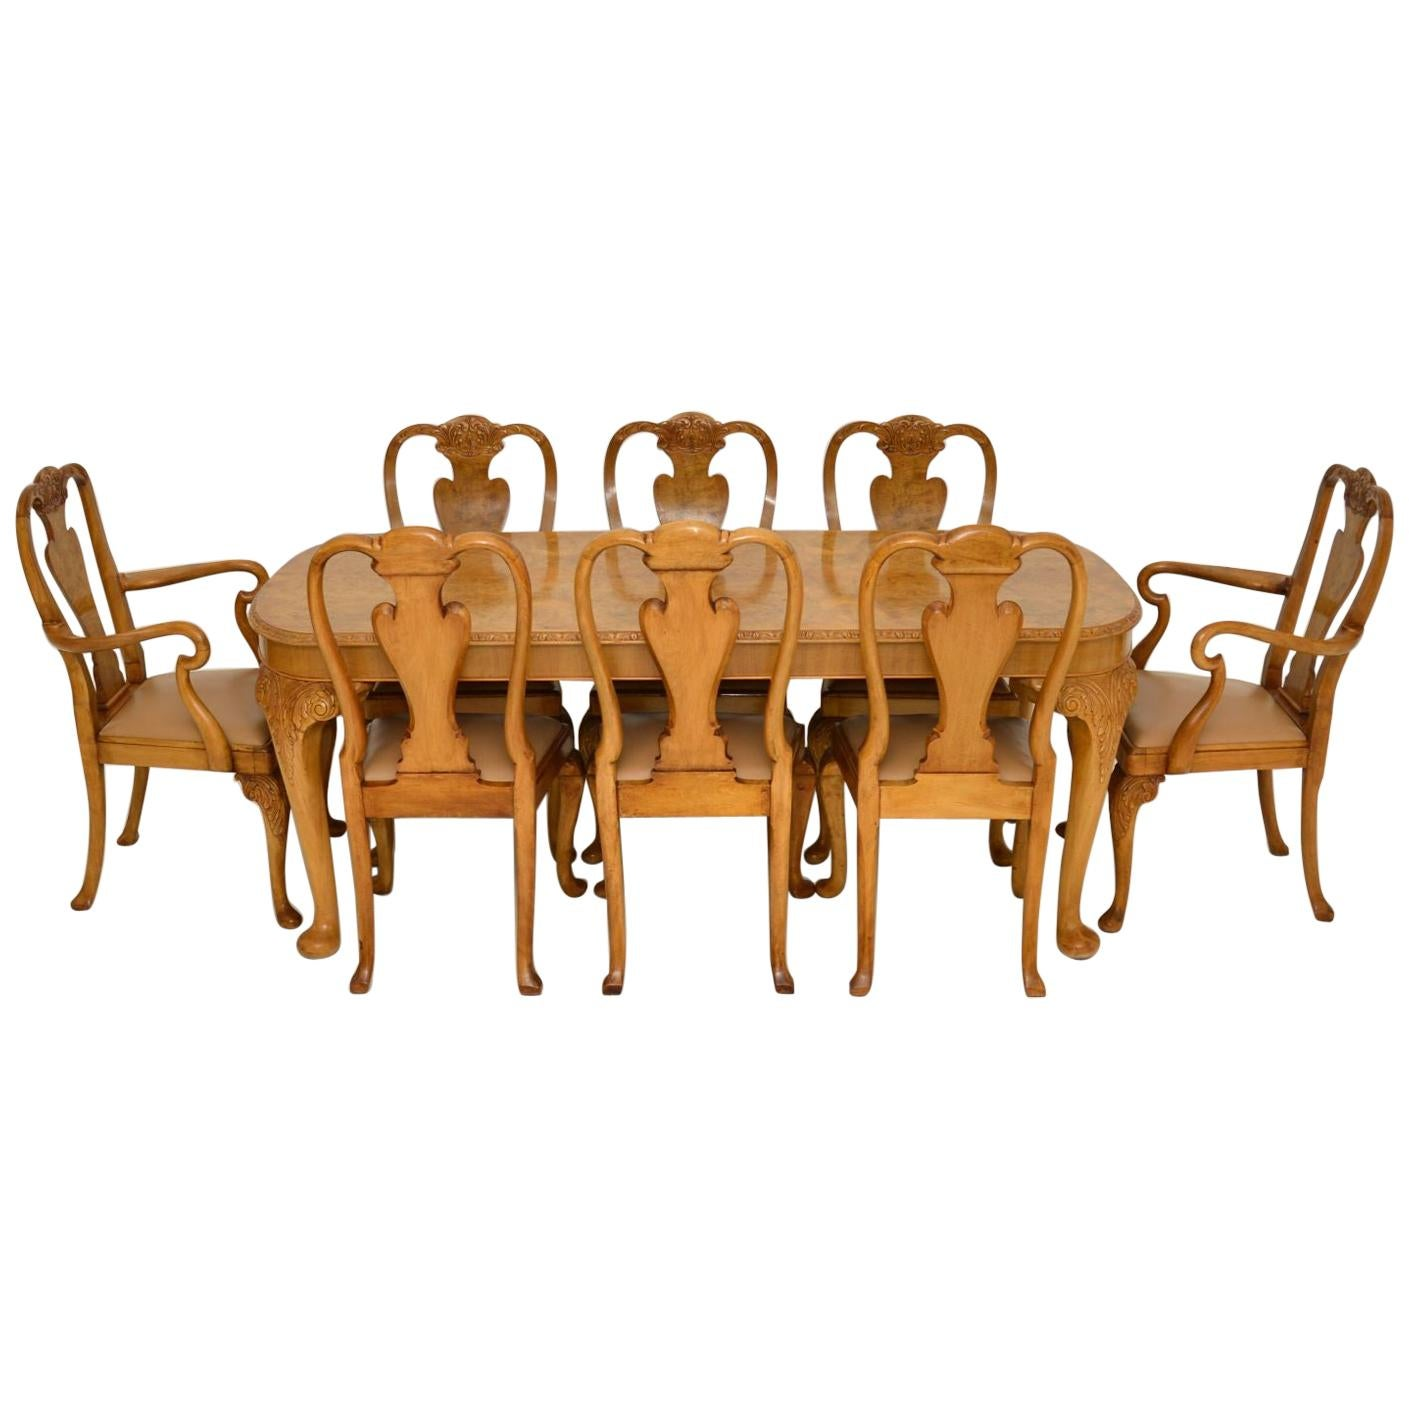 Antique Burr Walnut Dining Table & Chairs by Epstein